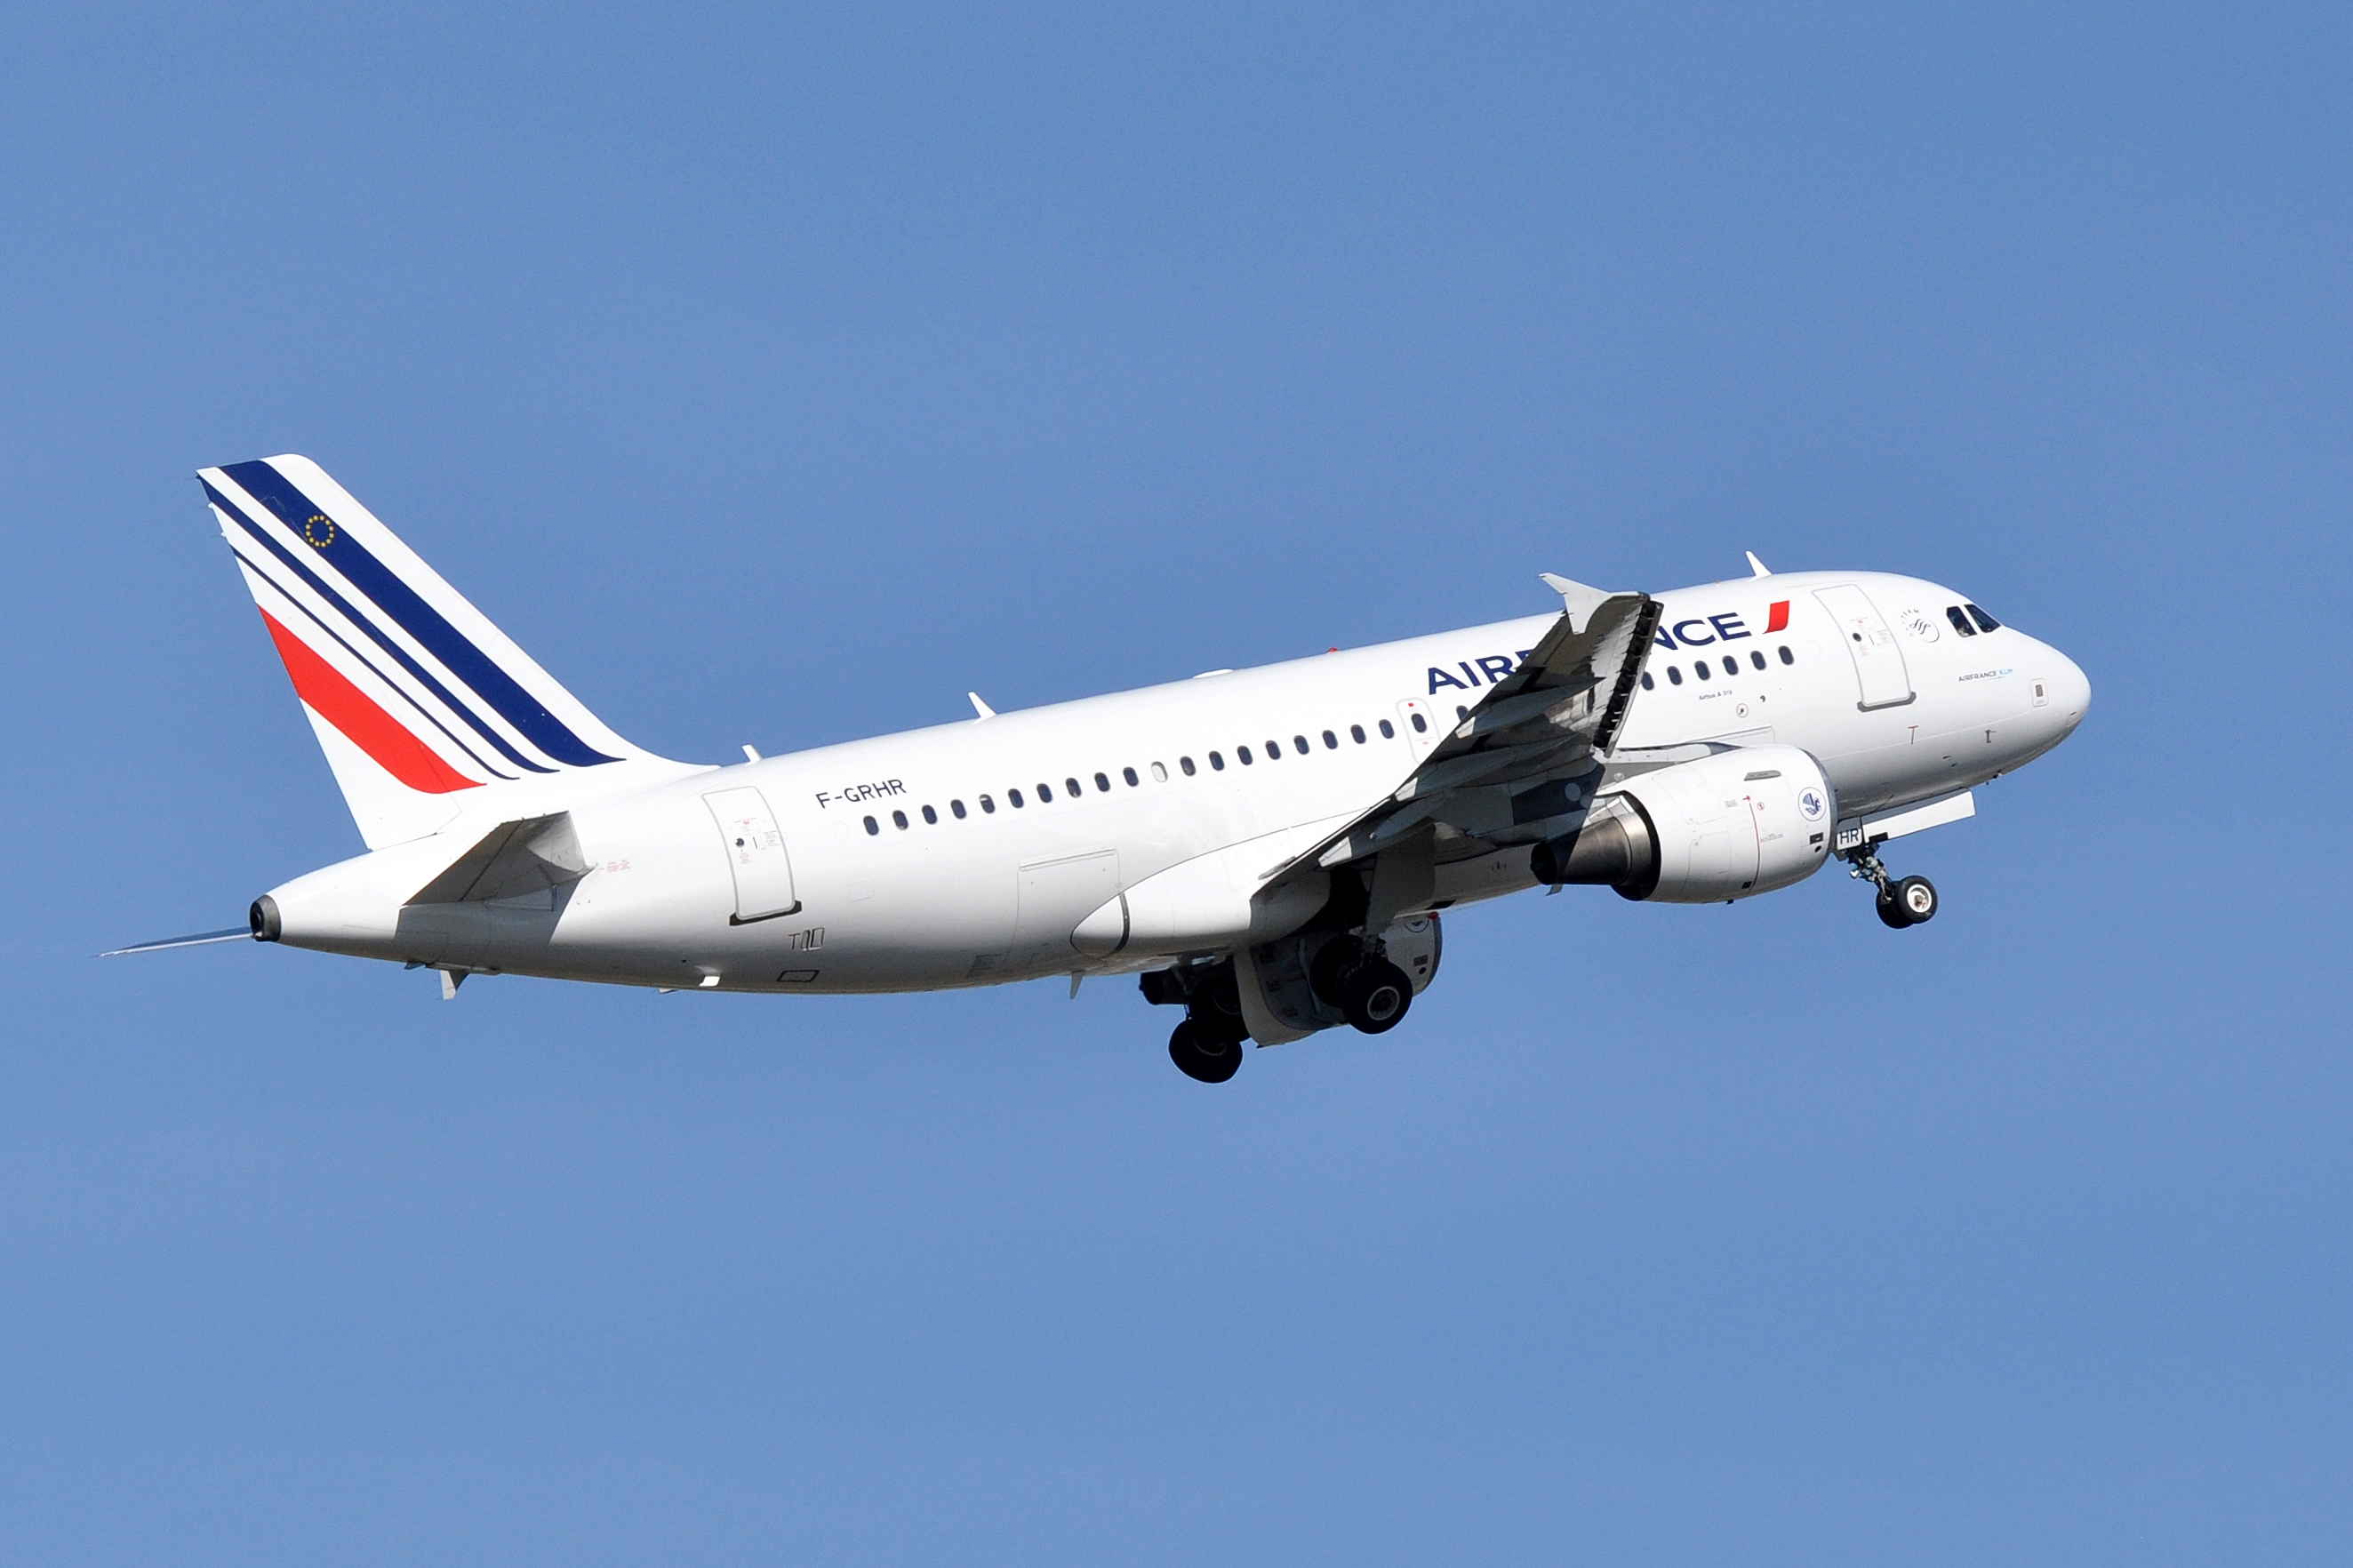 Child Is Found Inside a Carry-On Bag During an Air France Flight